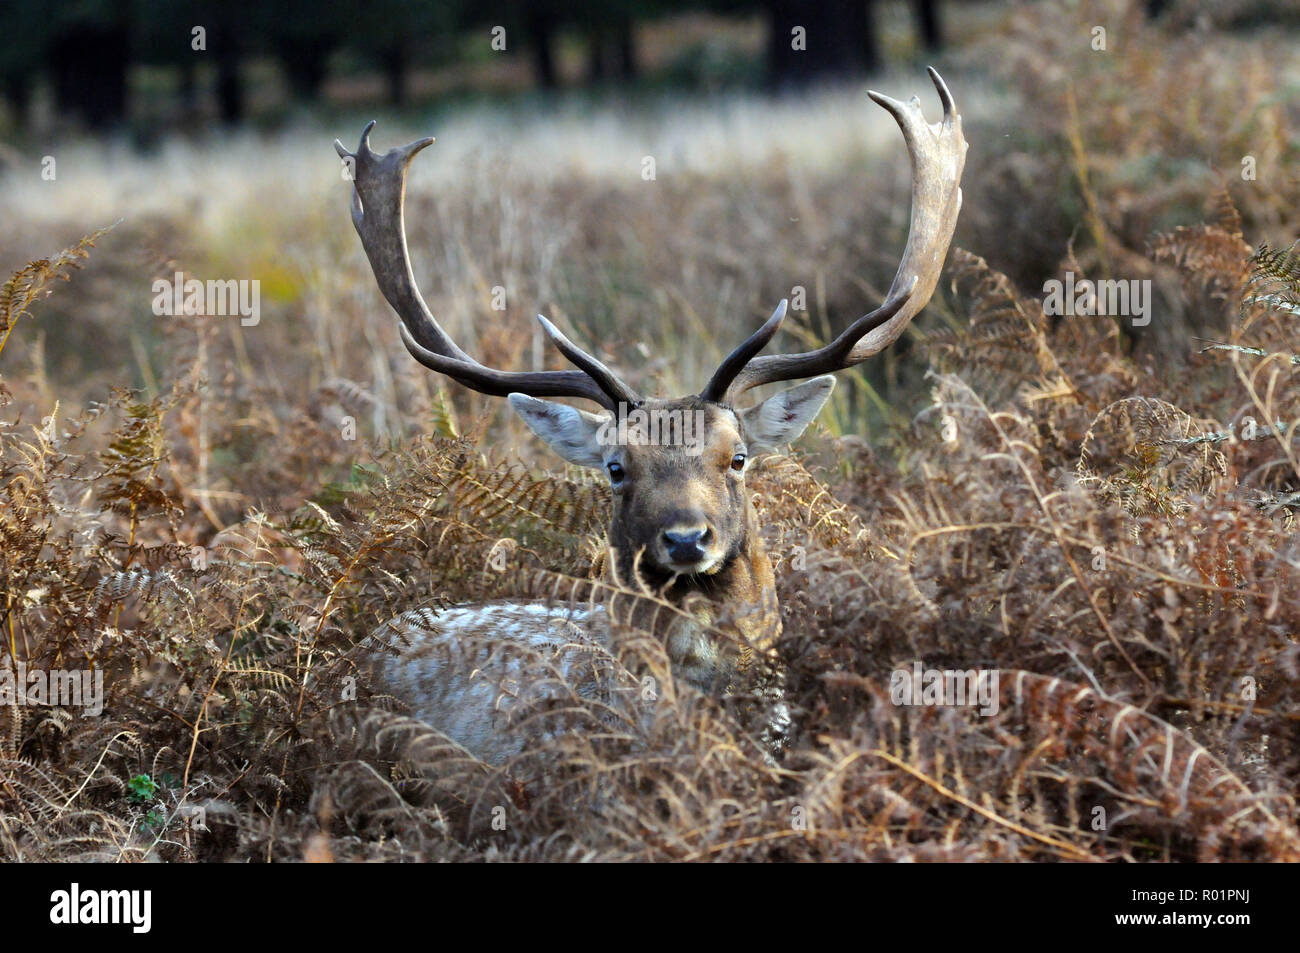 London, UK, 31 October 2018 Fallow deer in Richmond Park.  Sunny afternoon in Richmond Park on the last day of October. Credit: JOHNNY ARMSTEAD/Alamy Live News - Stock Image